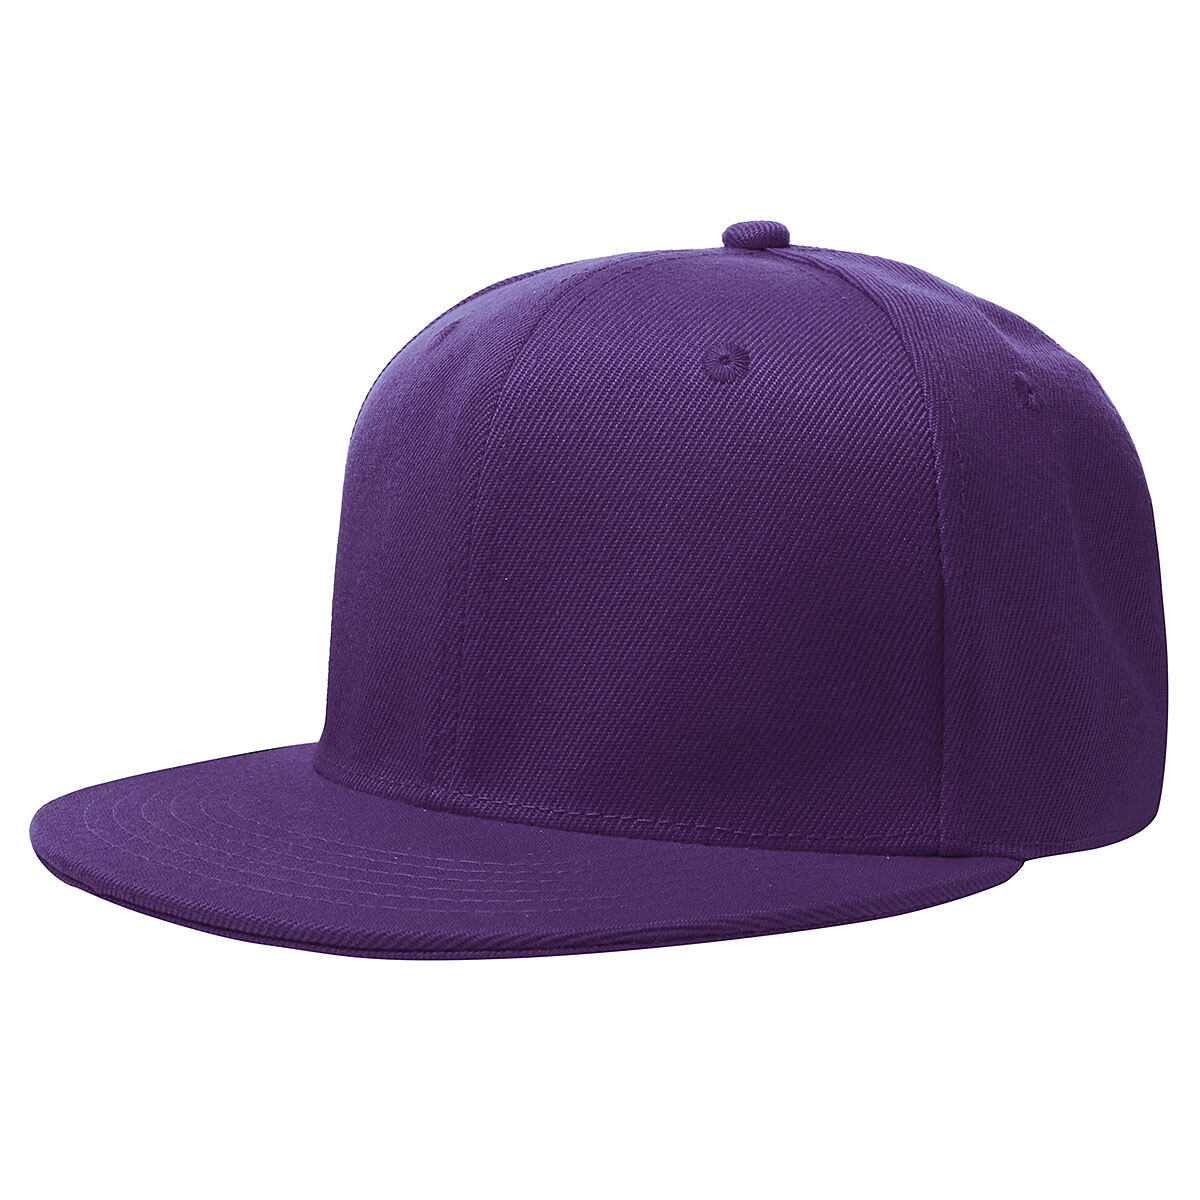 a9d450a1f NEW RETRO Plain Fitted Cap New Baseball Hat Solid Flat Bill Visor Blank  Color Purple -